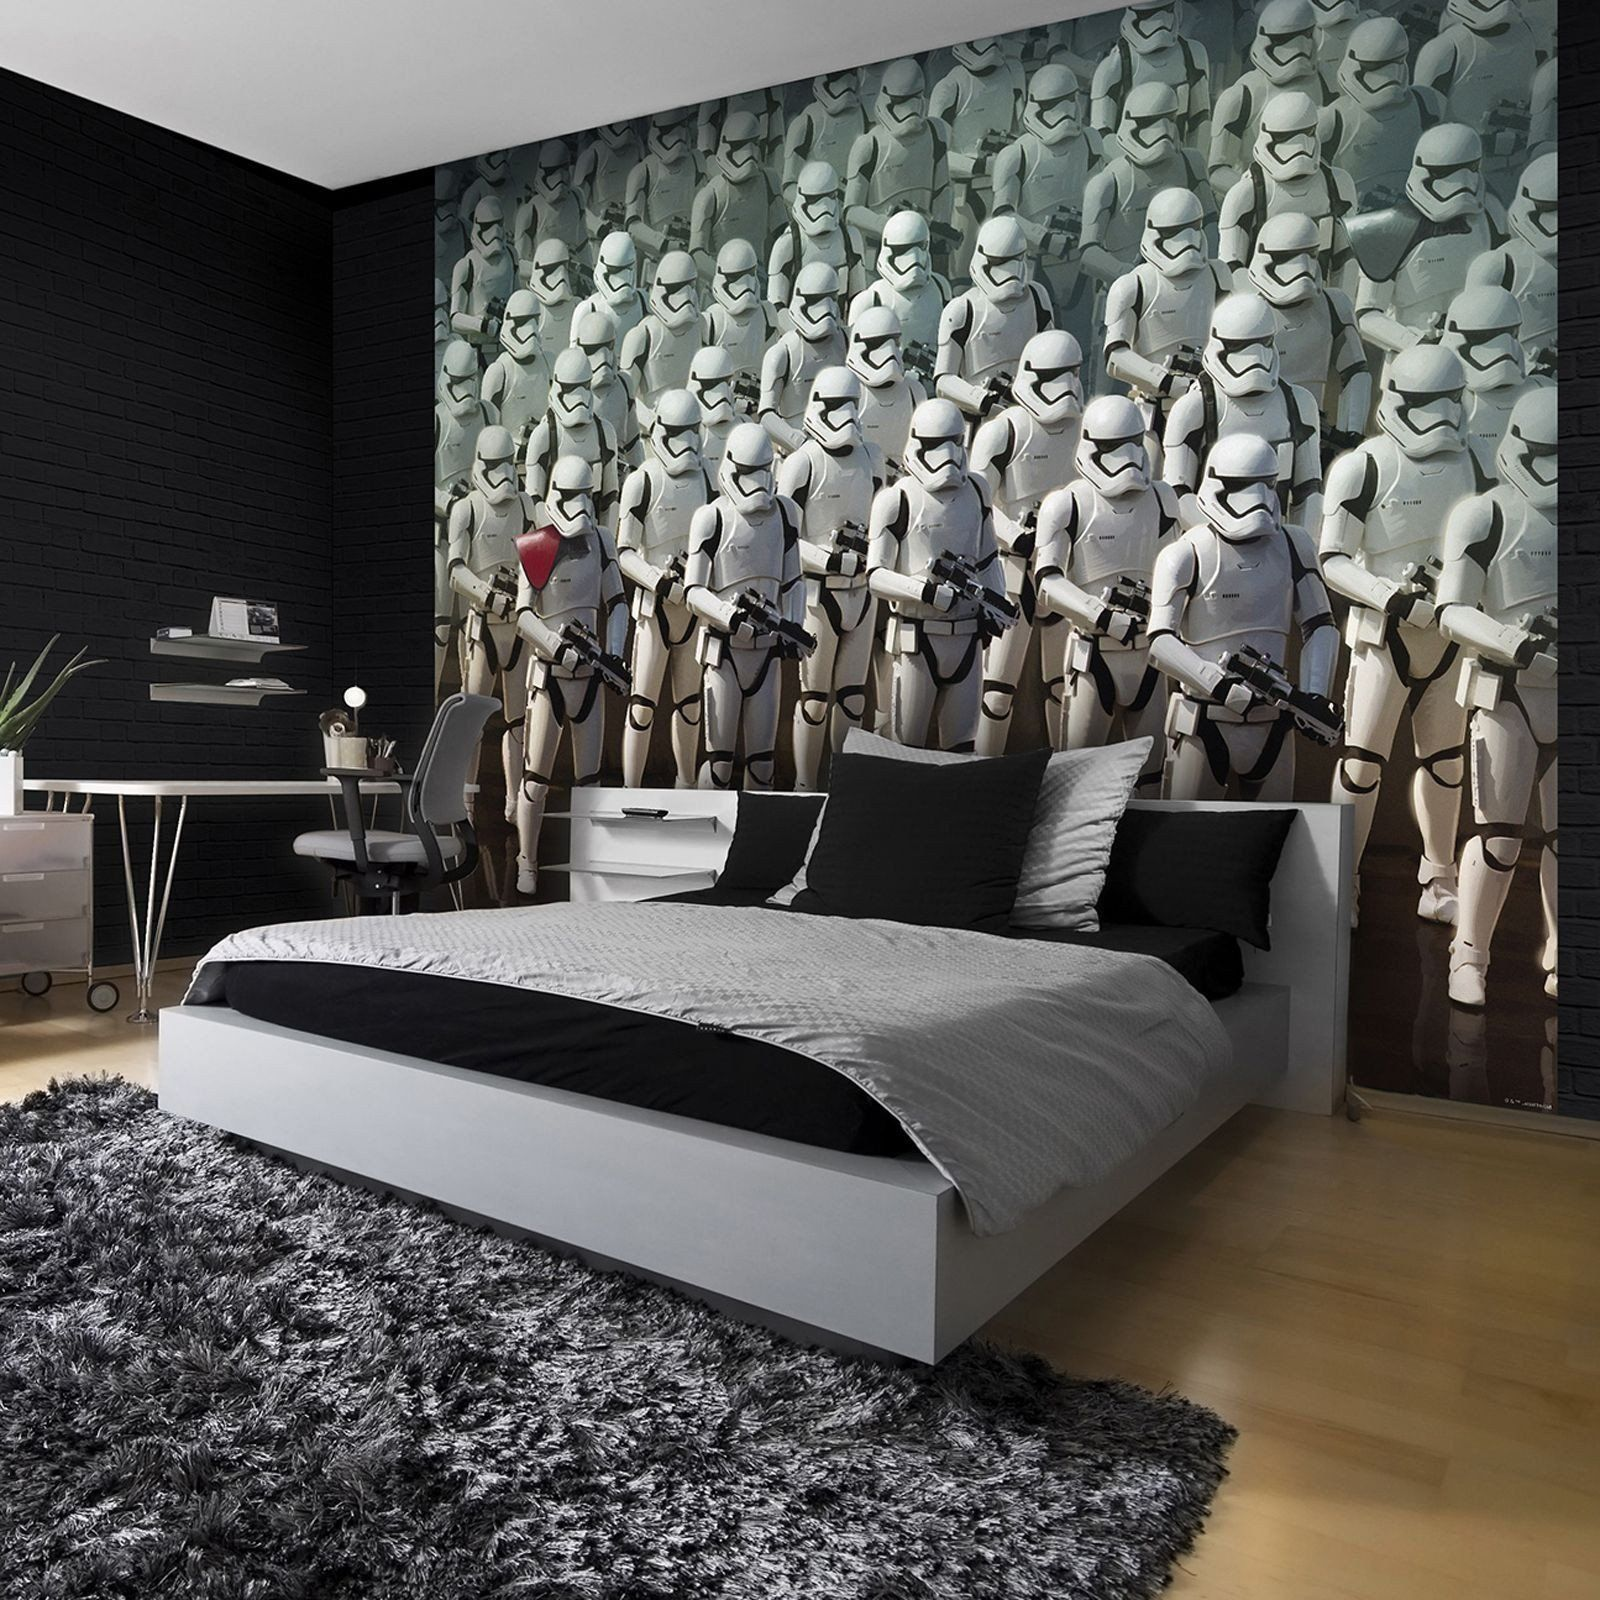 Star Wars Decoration Ideas Unique Star Wars Stormtrooper Wall